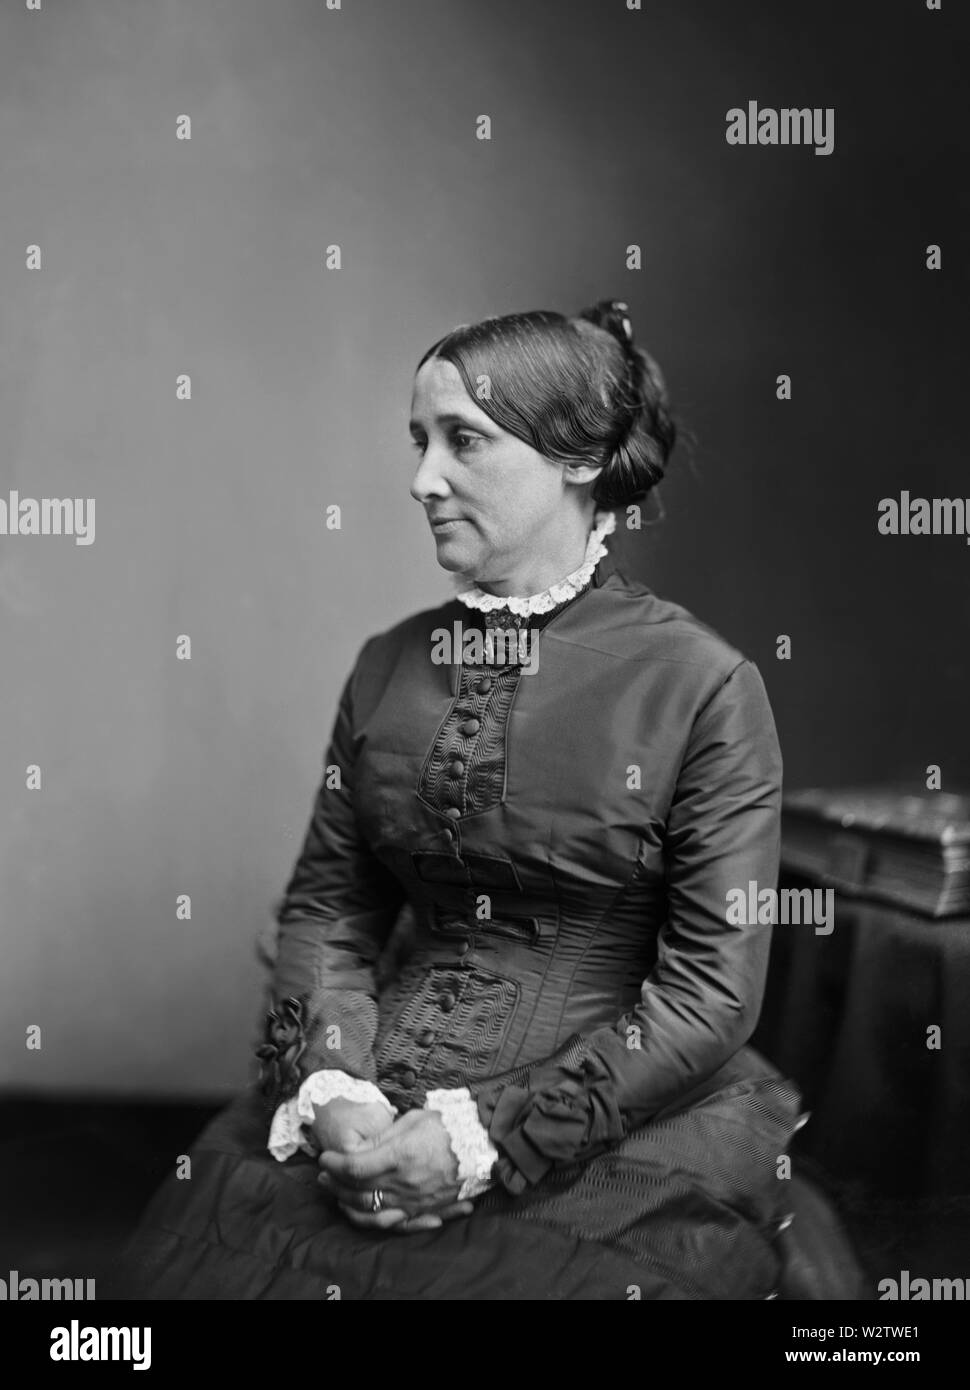 Lucy Webb Hayes, (1831-89), First Lady of the United States 1877-81, Wife of U.S. President Rutherford B. Hayes, Seated Portrait, Photograph, Brady-Handy Collection, 1870's - Stock Image